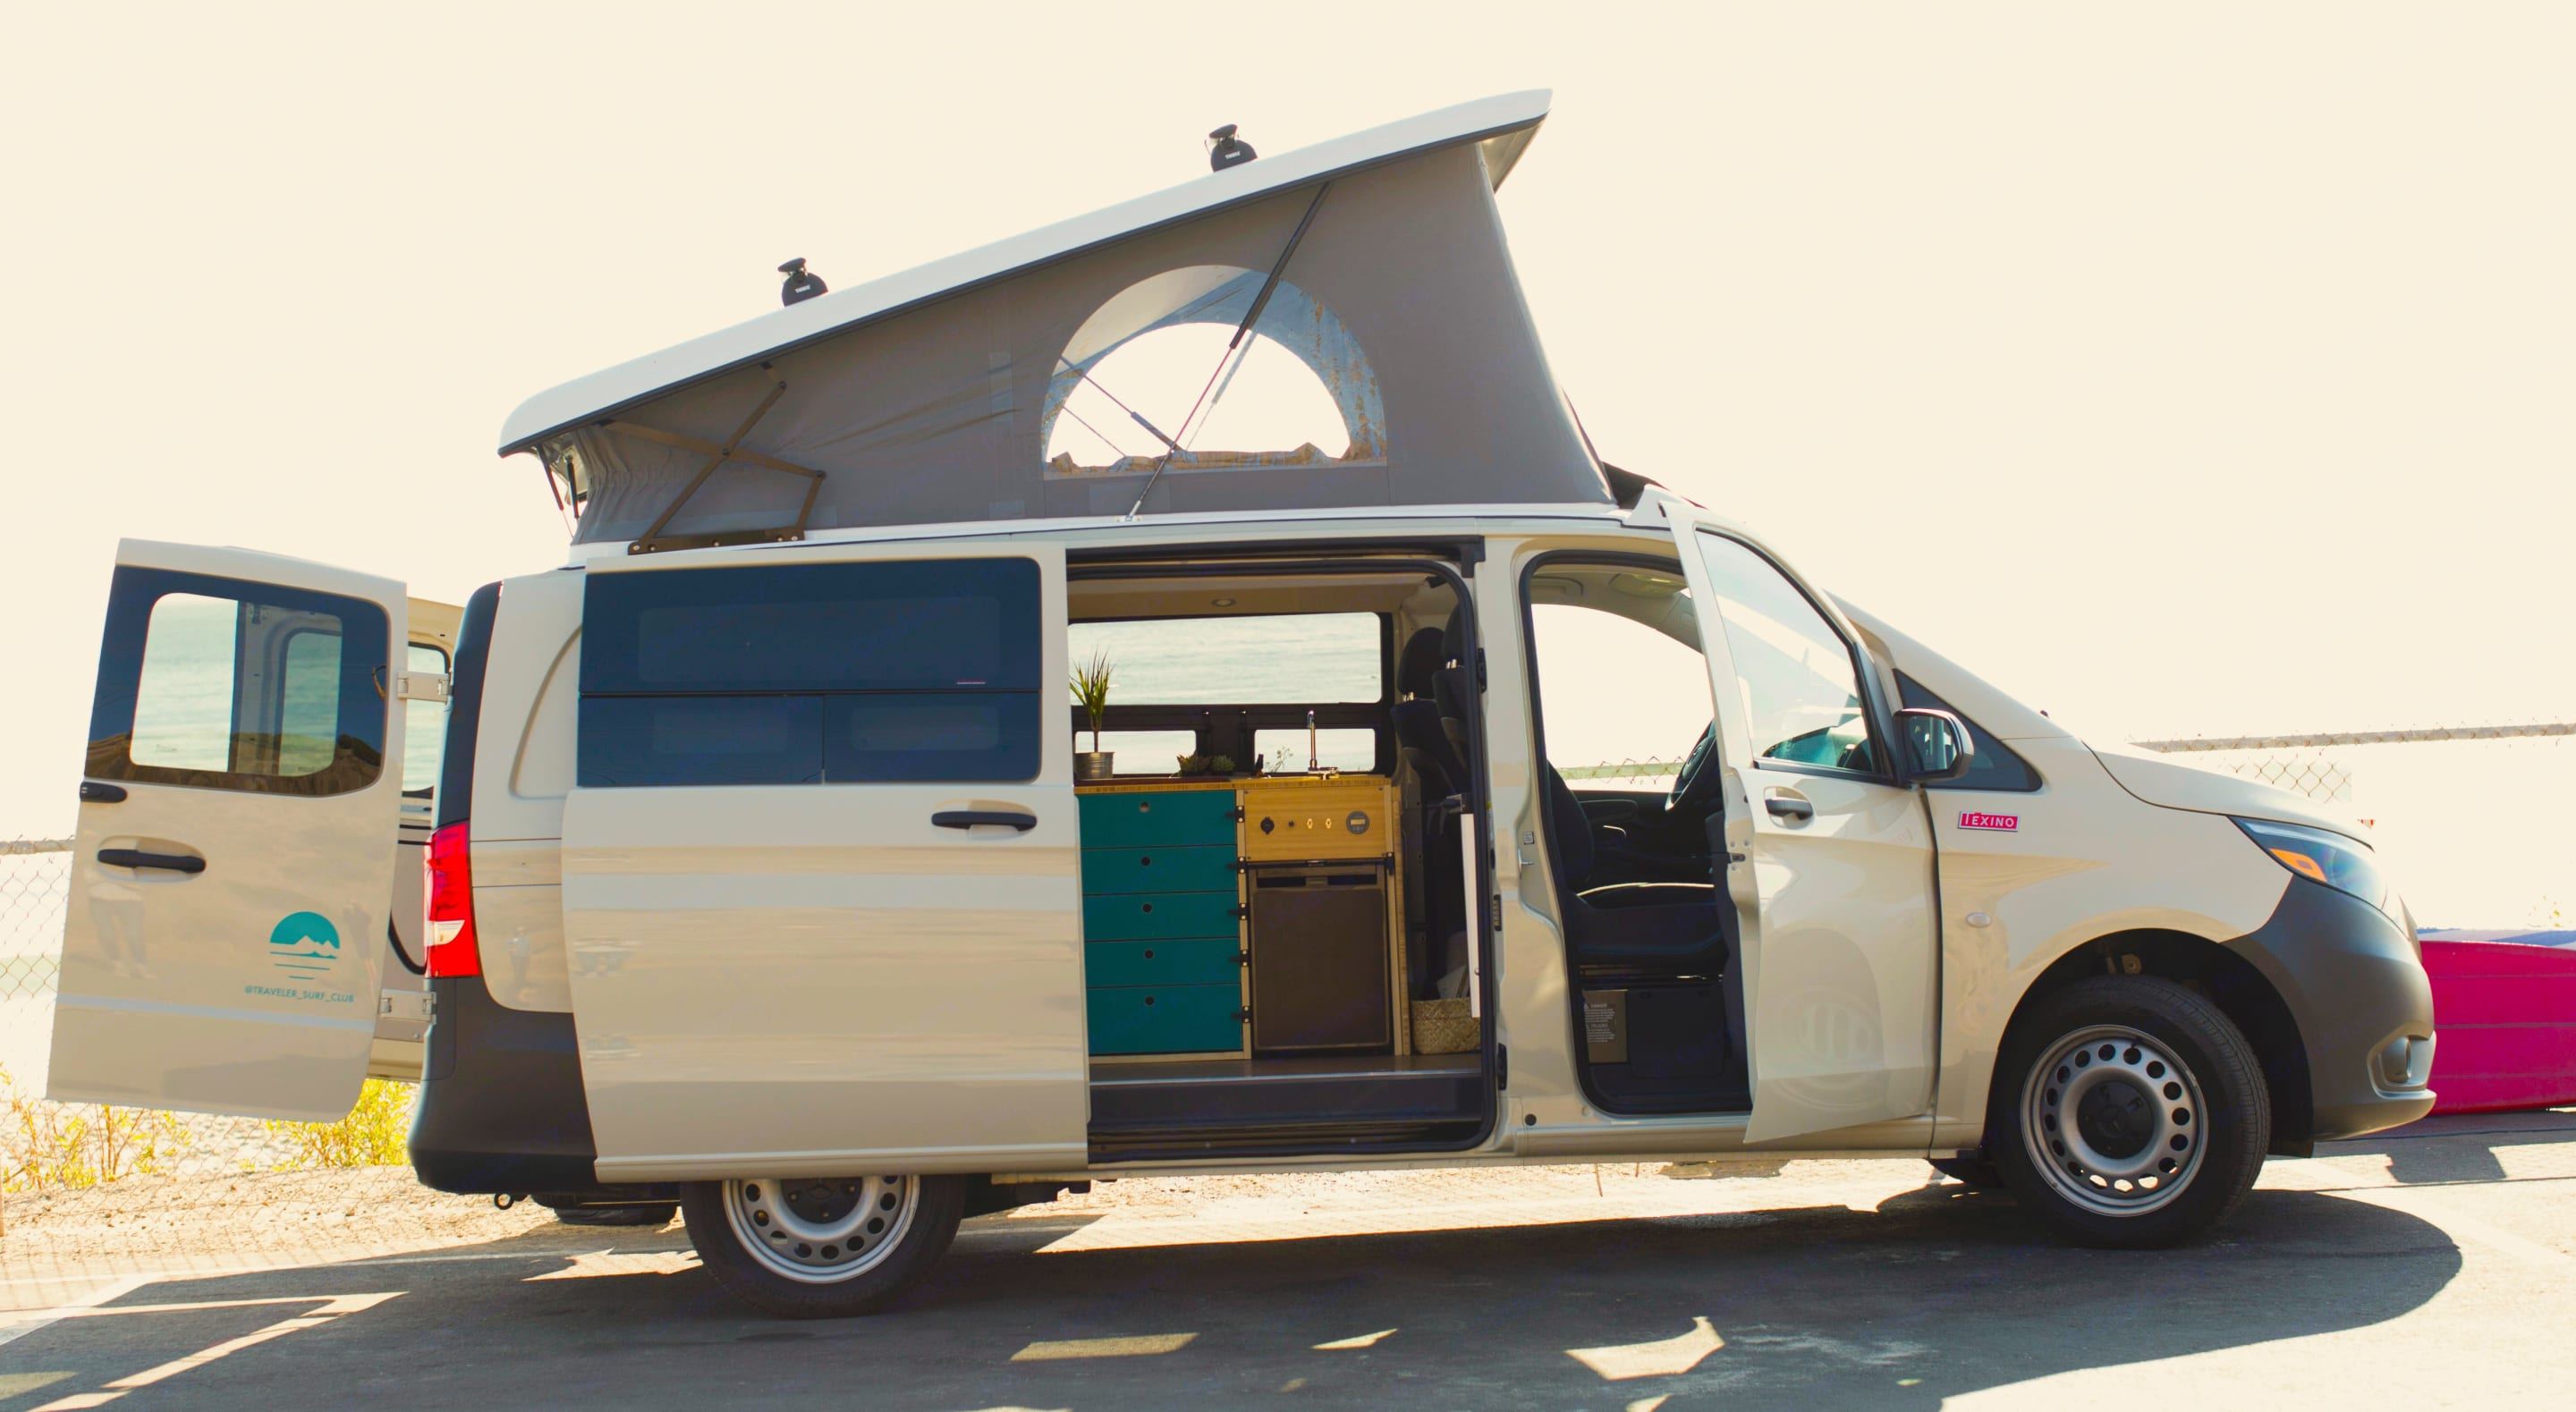 The Sandy Van opens up for ocean breezes and epic panoramic views! The Pop-top allows for easy standing room in the galley.. Mercedes-Benz Metris Pop-Top 2020